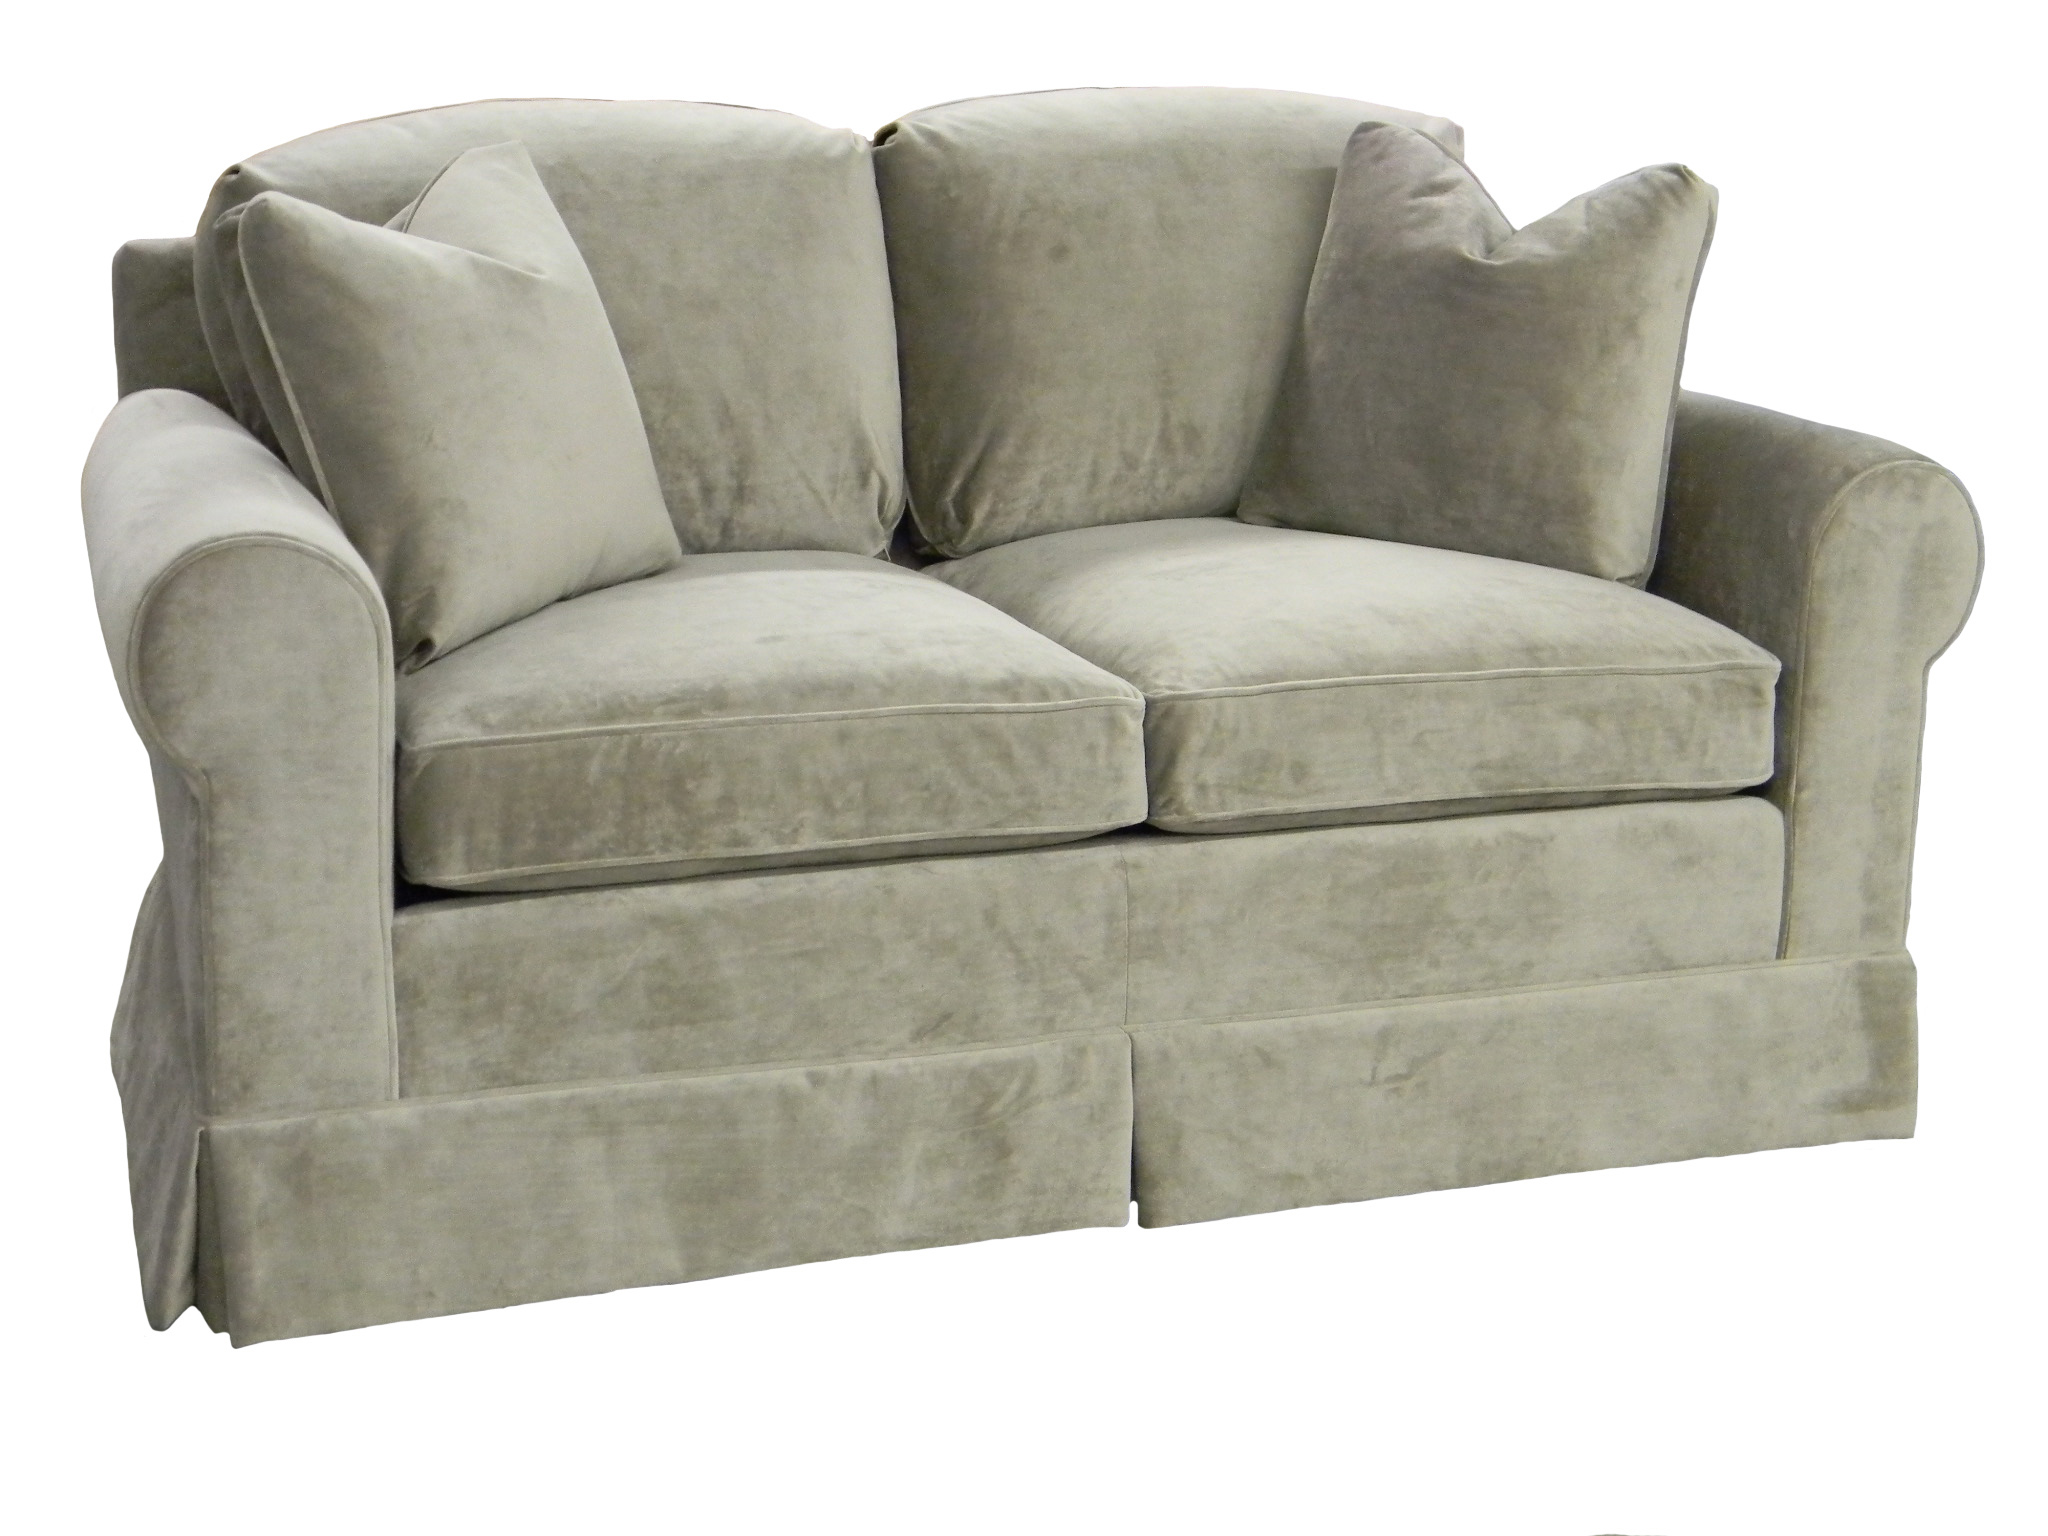 Hughes Loveseat Small Sofa Carolina Chair